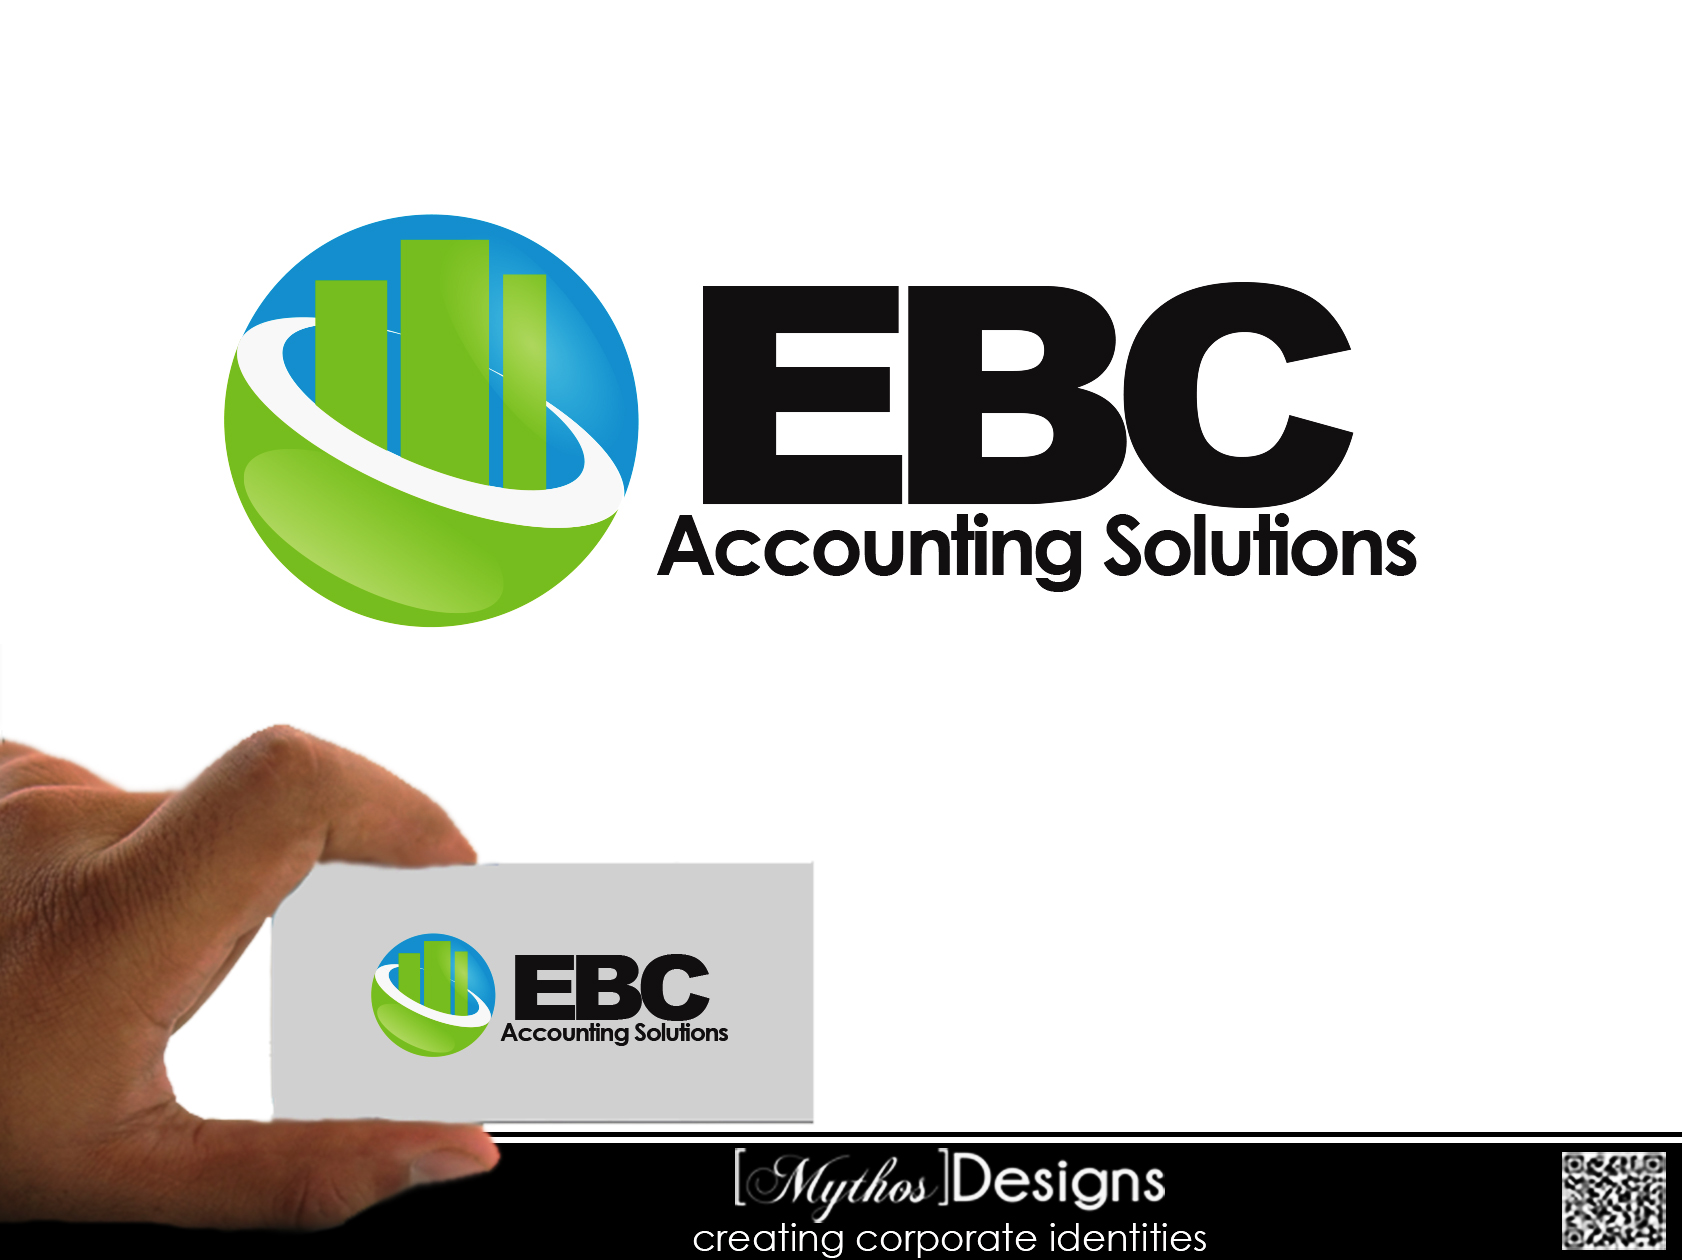 Logo Design by Mythos Designs - Entry No. 20 in the Logo Design Contest New Logo Design for EBC Accounting Solutions.